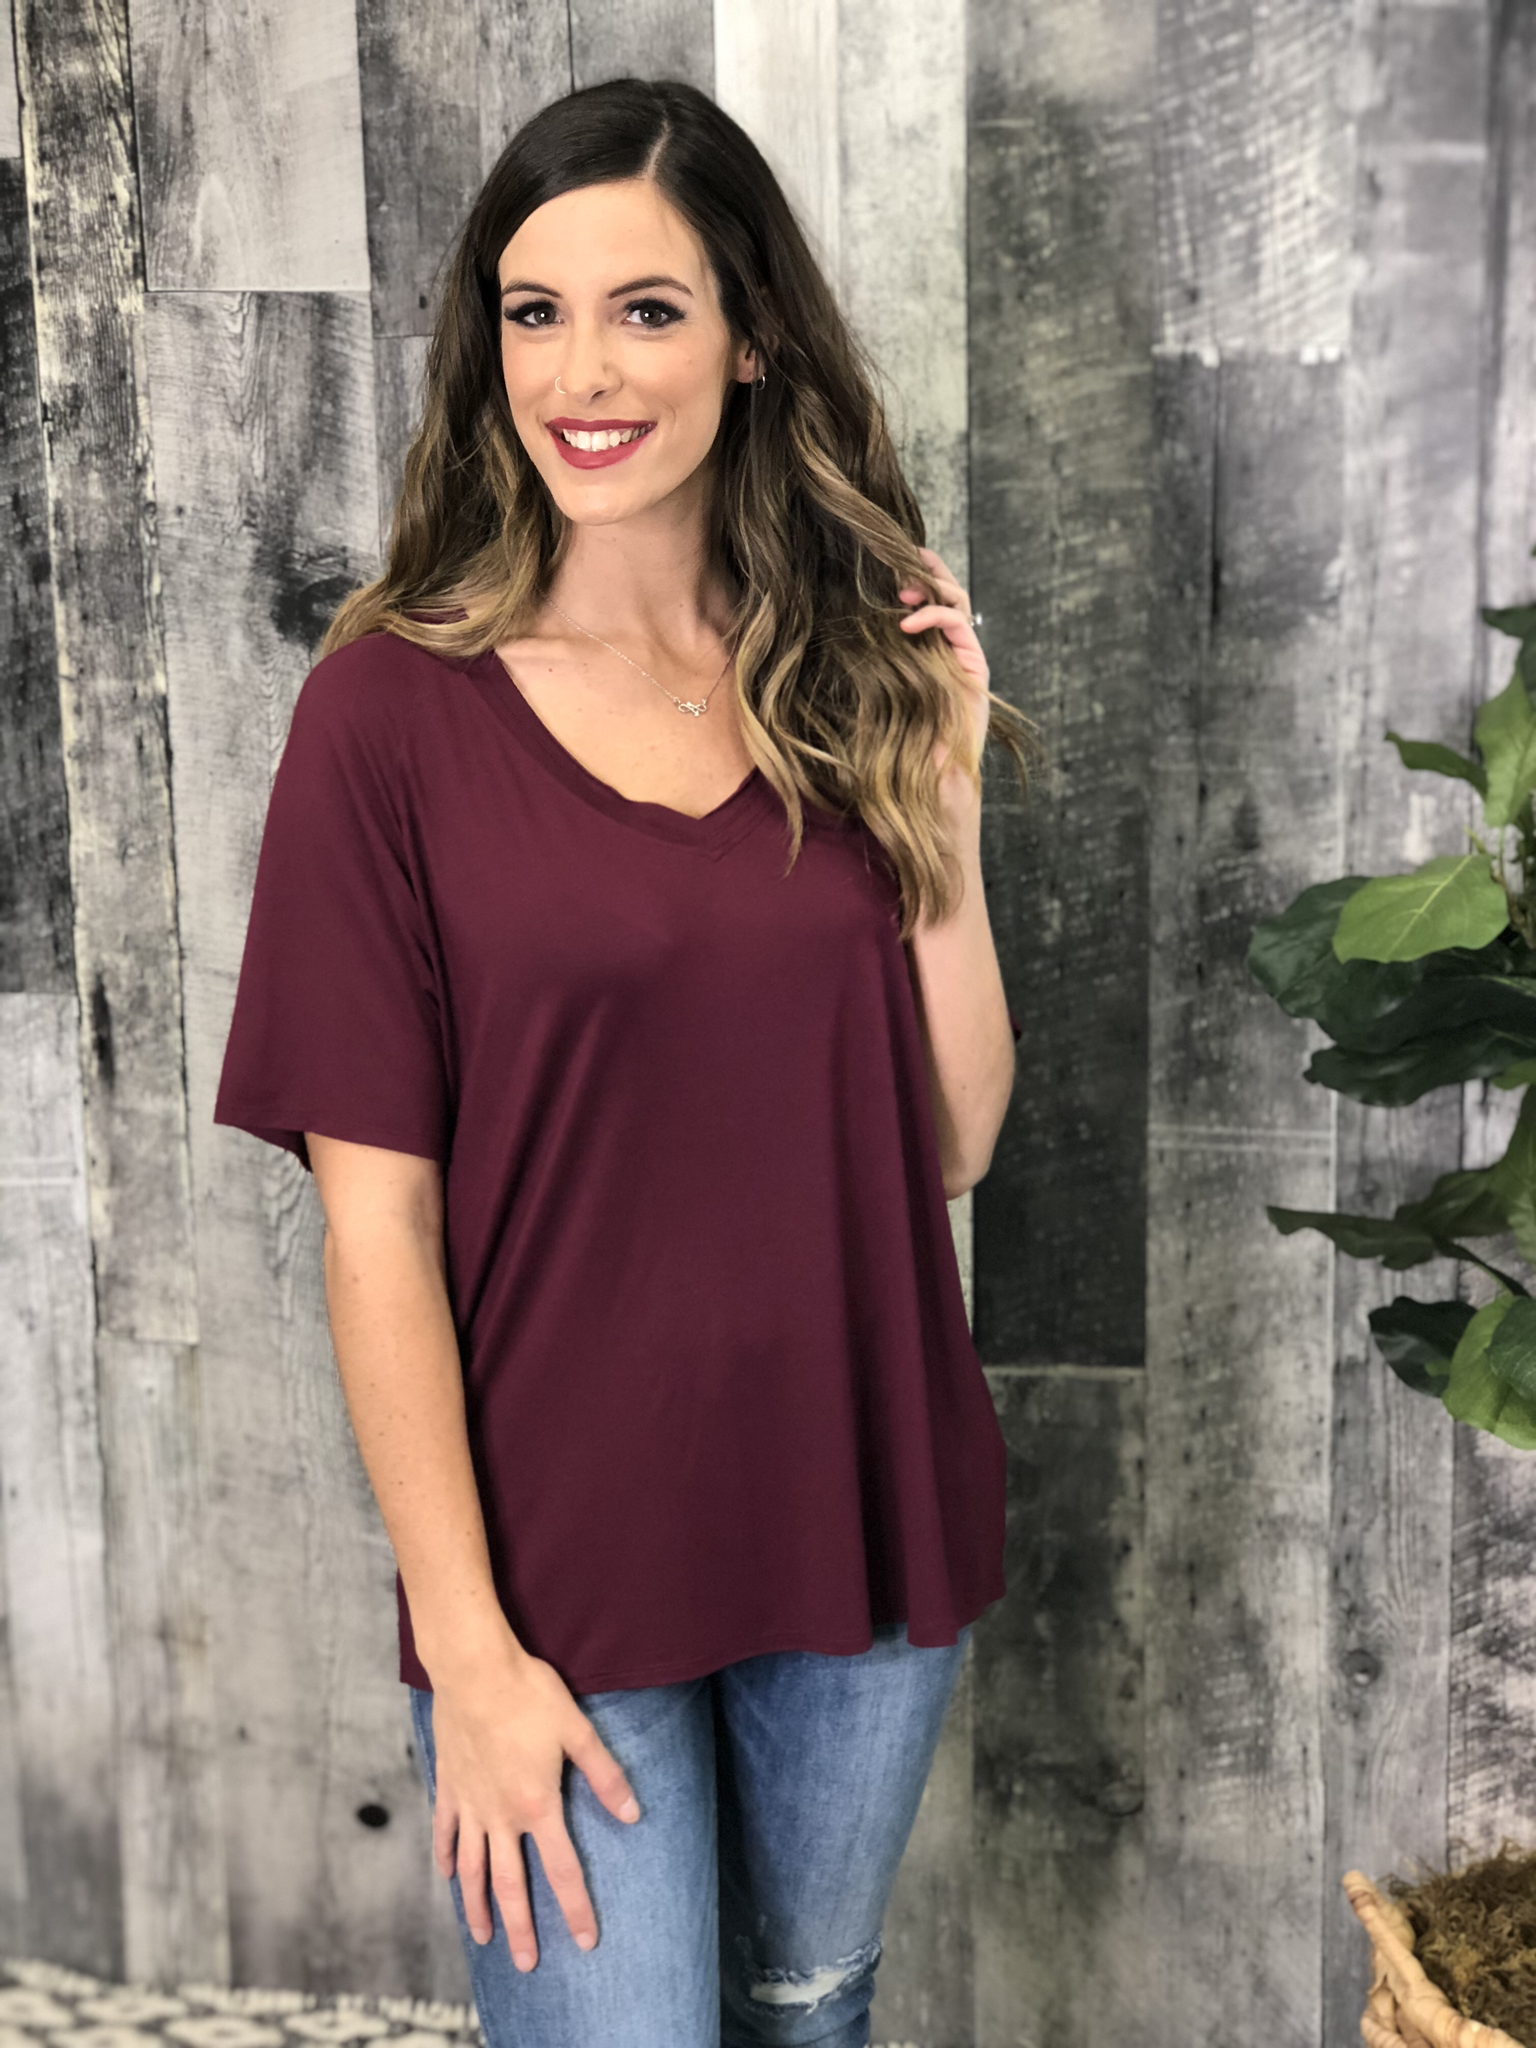 Premium V-Neck Relaxed Fit Tee - Burgundy 83783